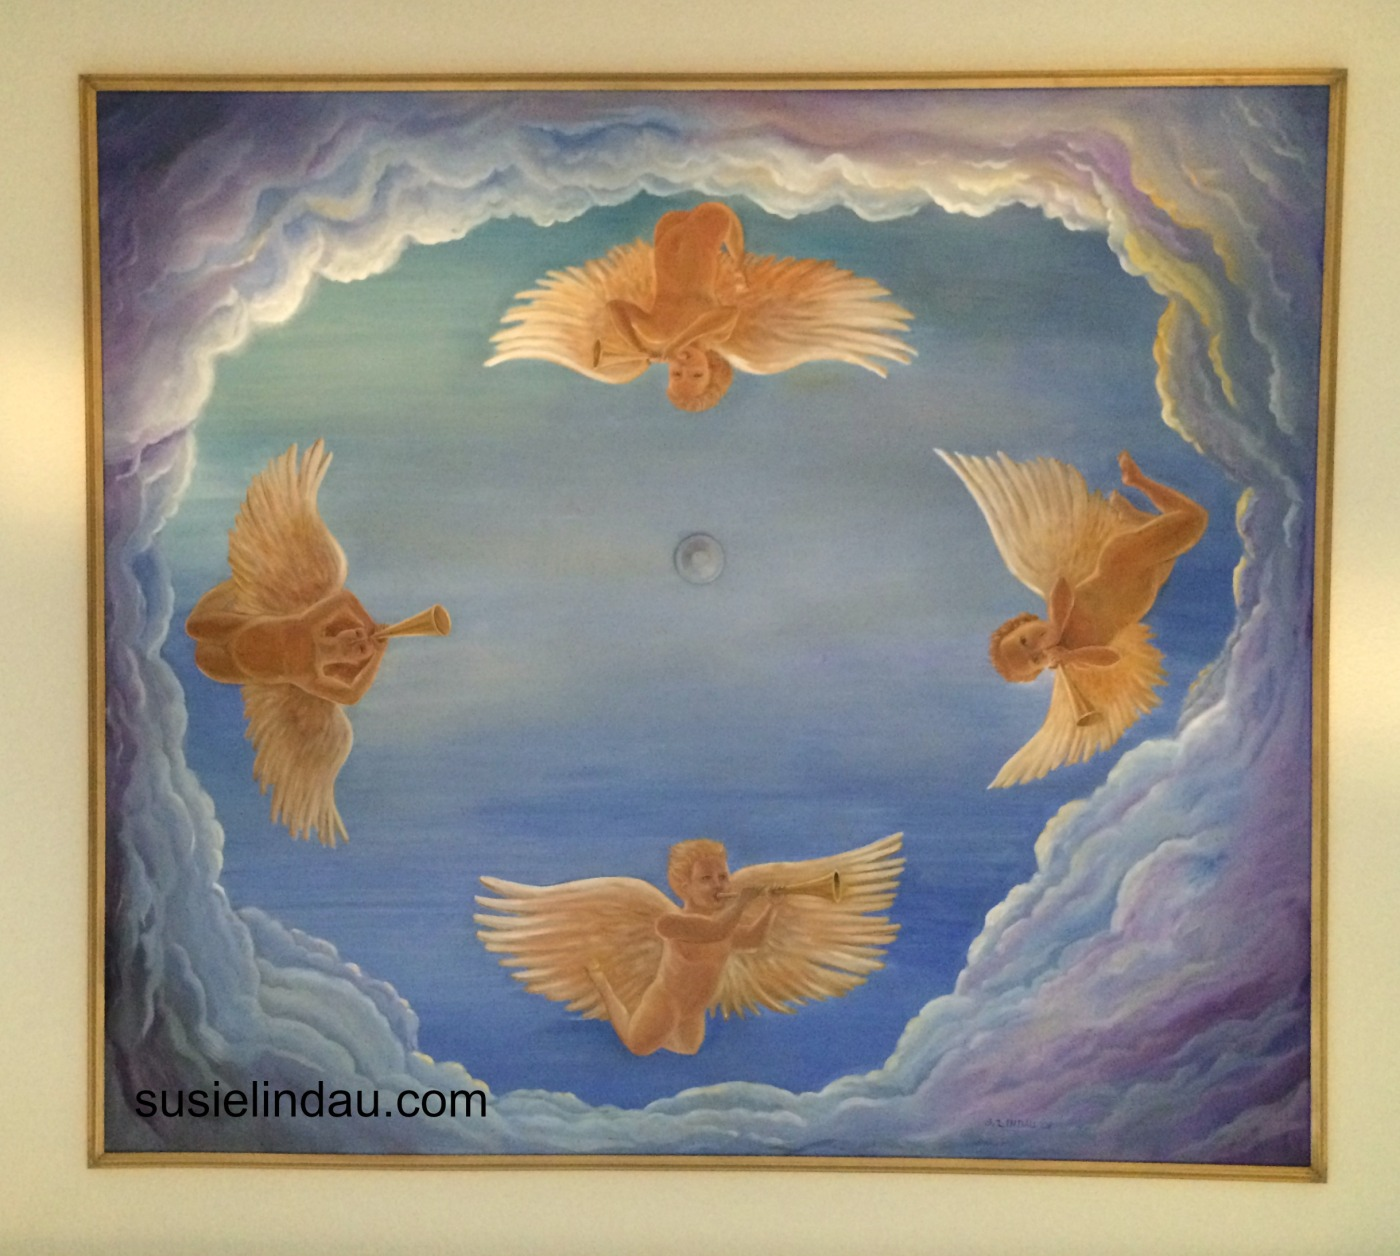 ceiling mural of angels by susie lindau